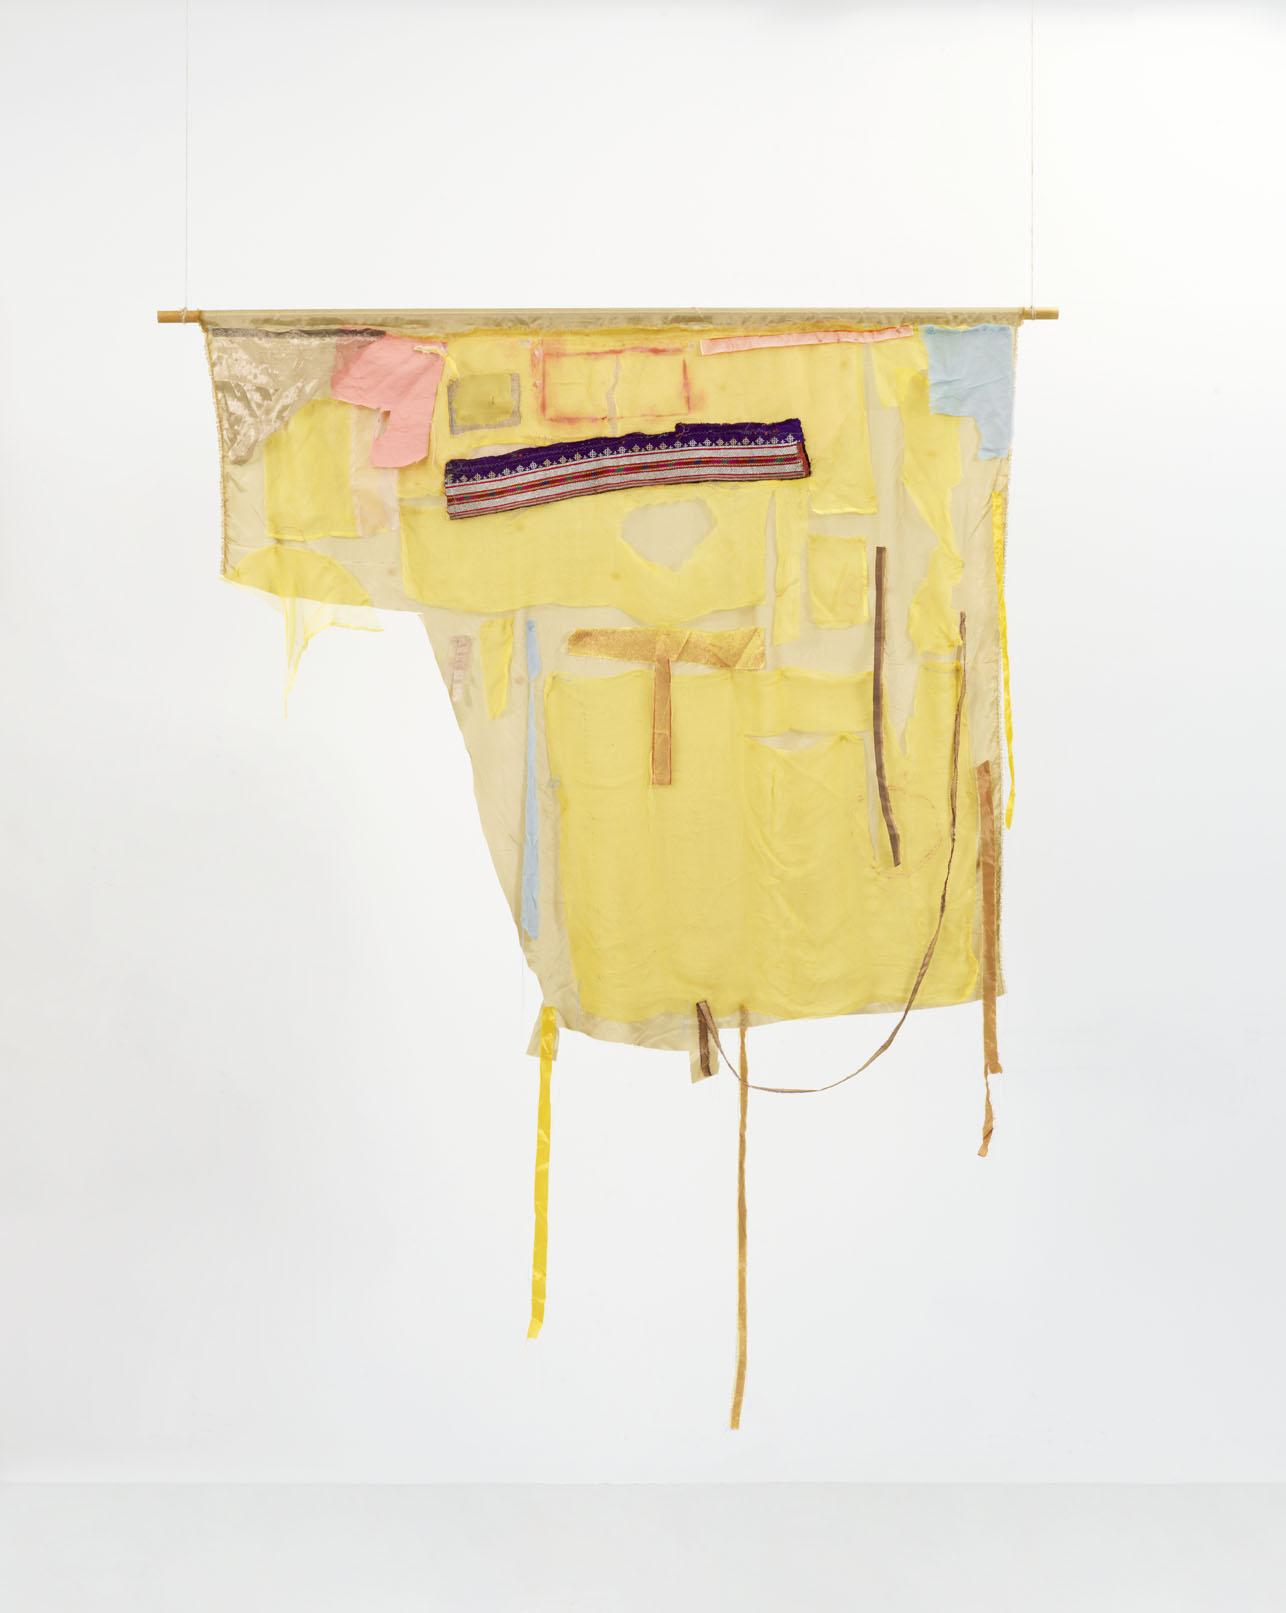 - 26. Peter Brandt. Yes and More No, 2016-17. Sculptural two-sided banner, applicated fabric, embroidery, pearls, oil paint, pencil and wood. 193 x 135 x 2 cm.